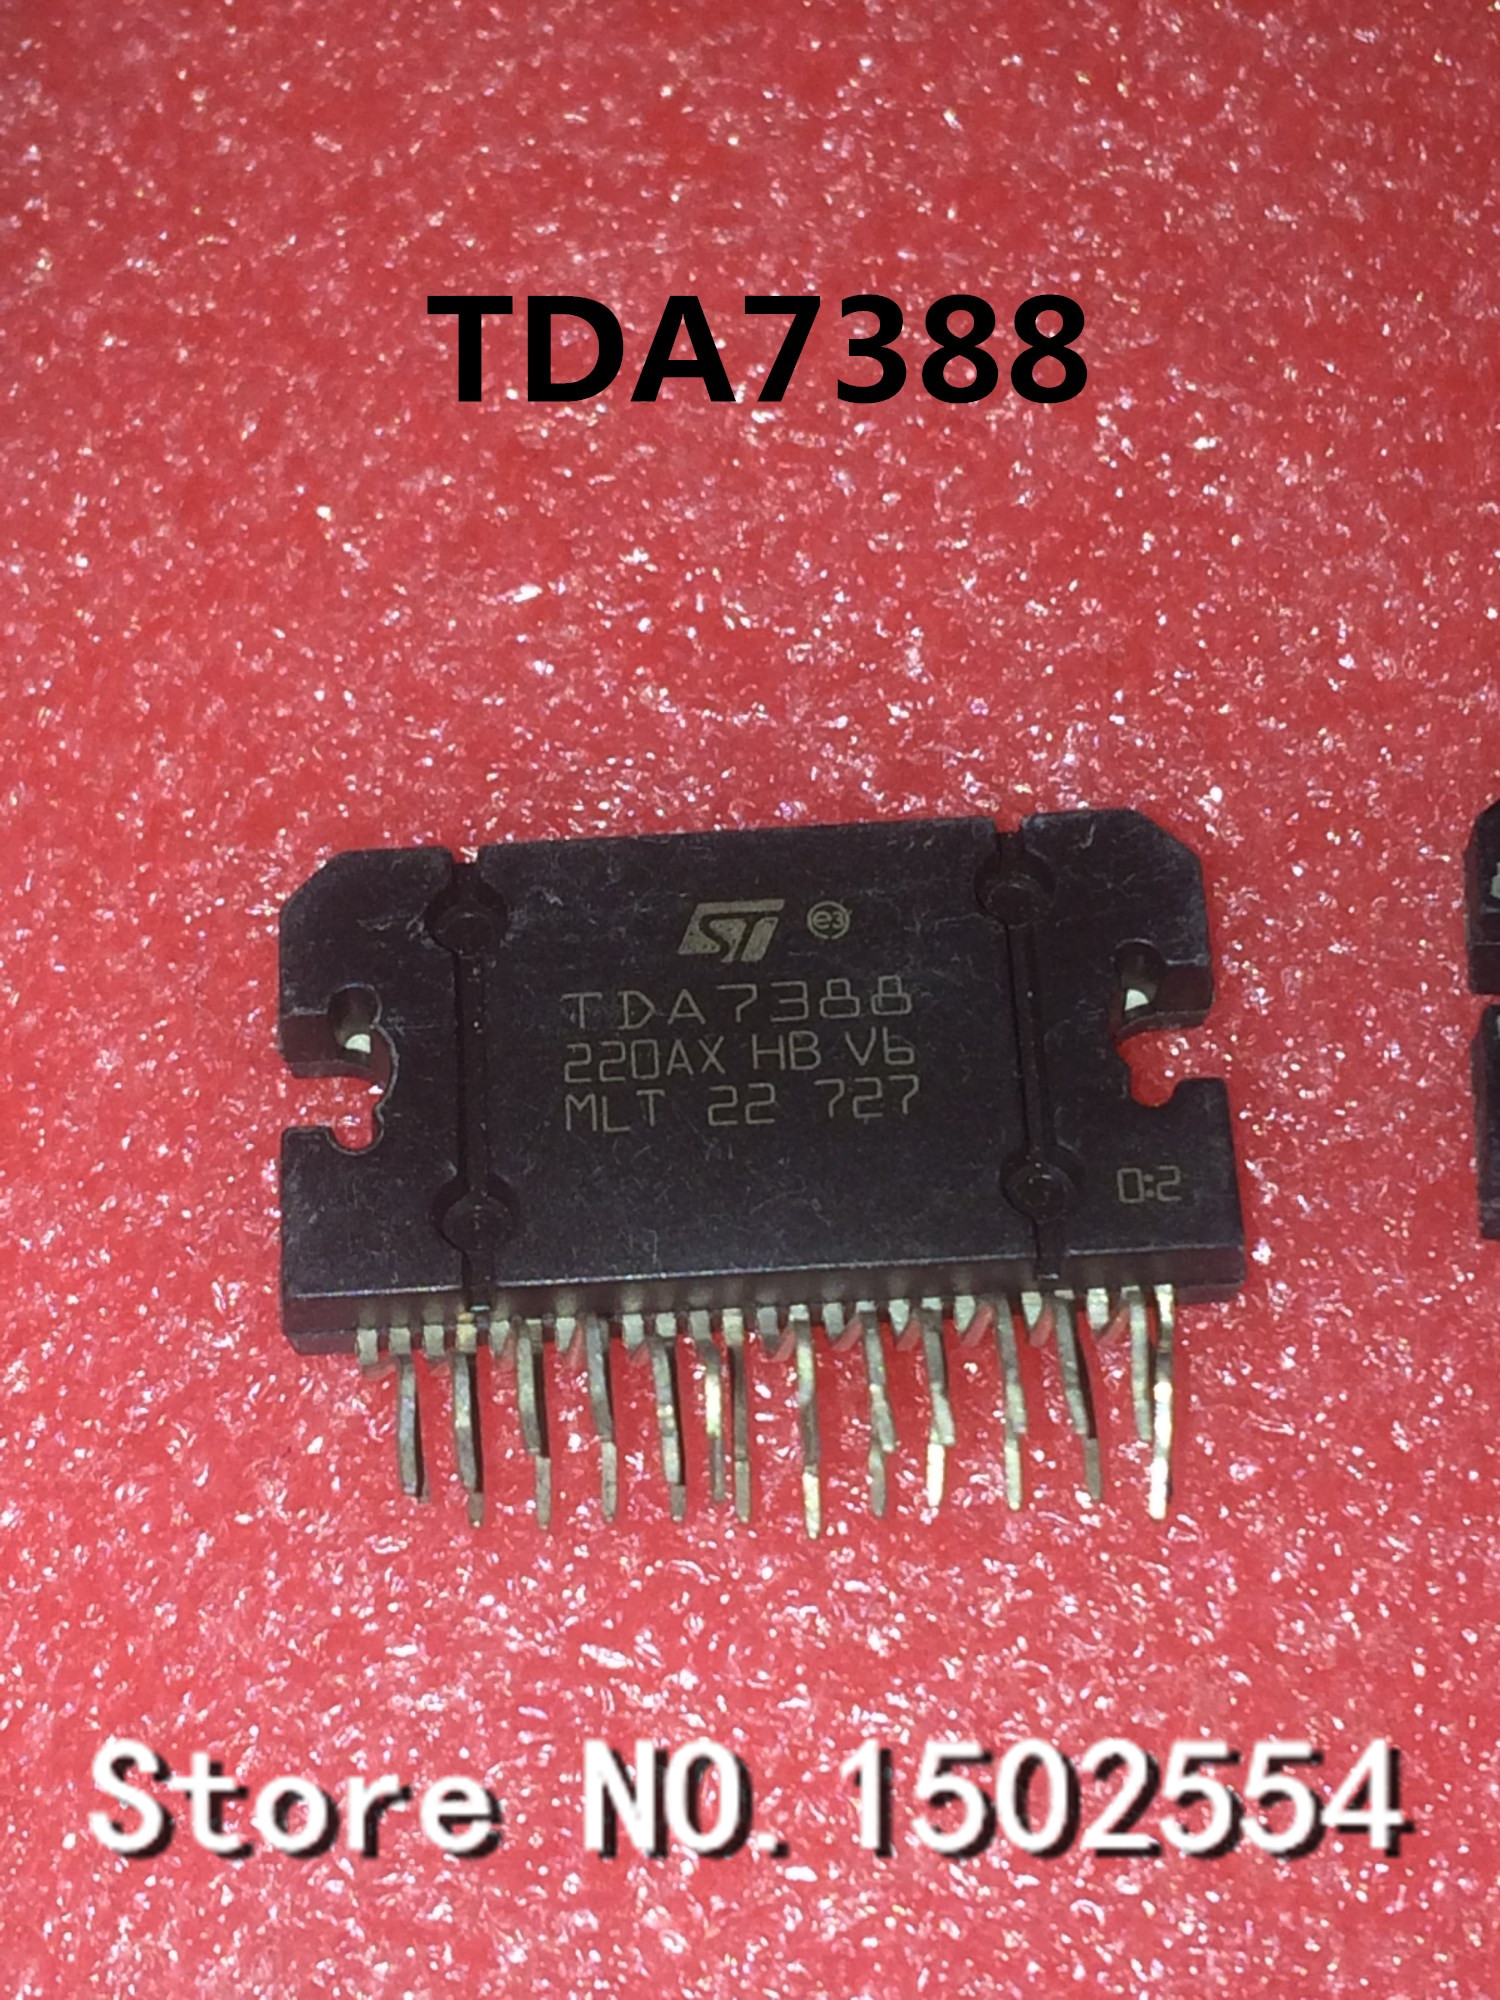 Yd7388 Car Audio Amplifier Ic Mute Short Circuit Protection In Stock 4 X 55w Power By Tda7560 Tda7388 Zip 25 Chip Four Channel Output